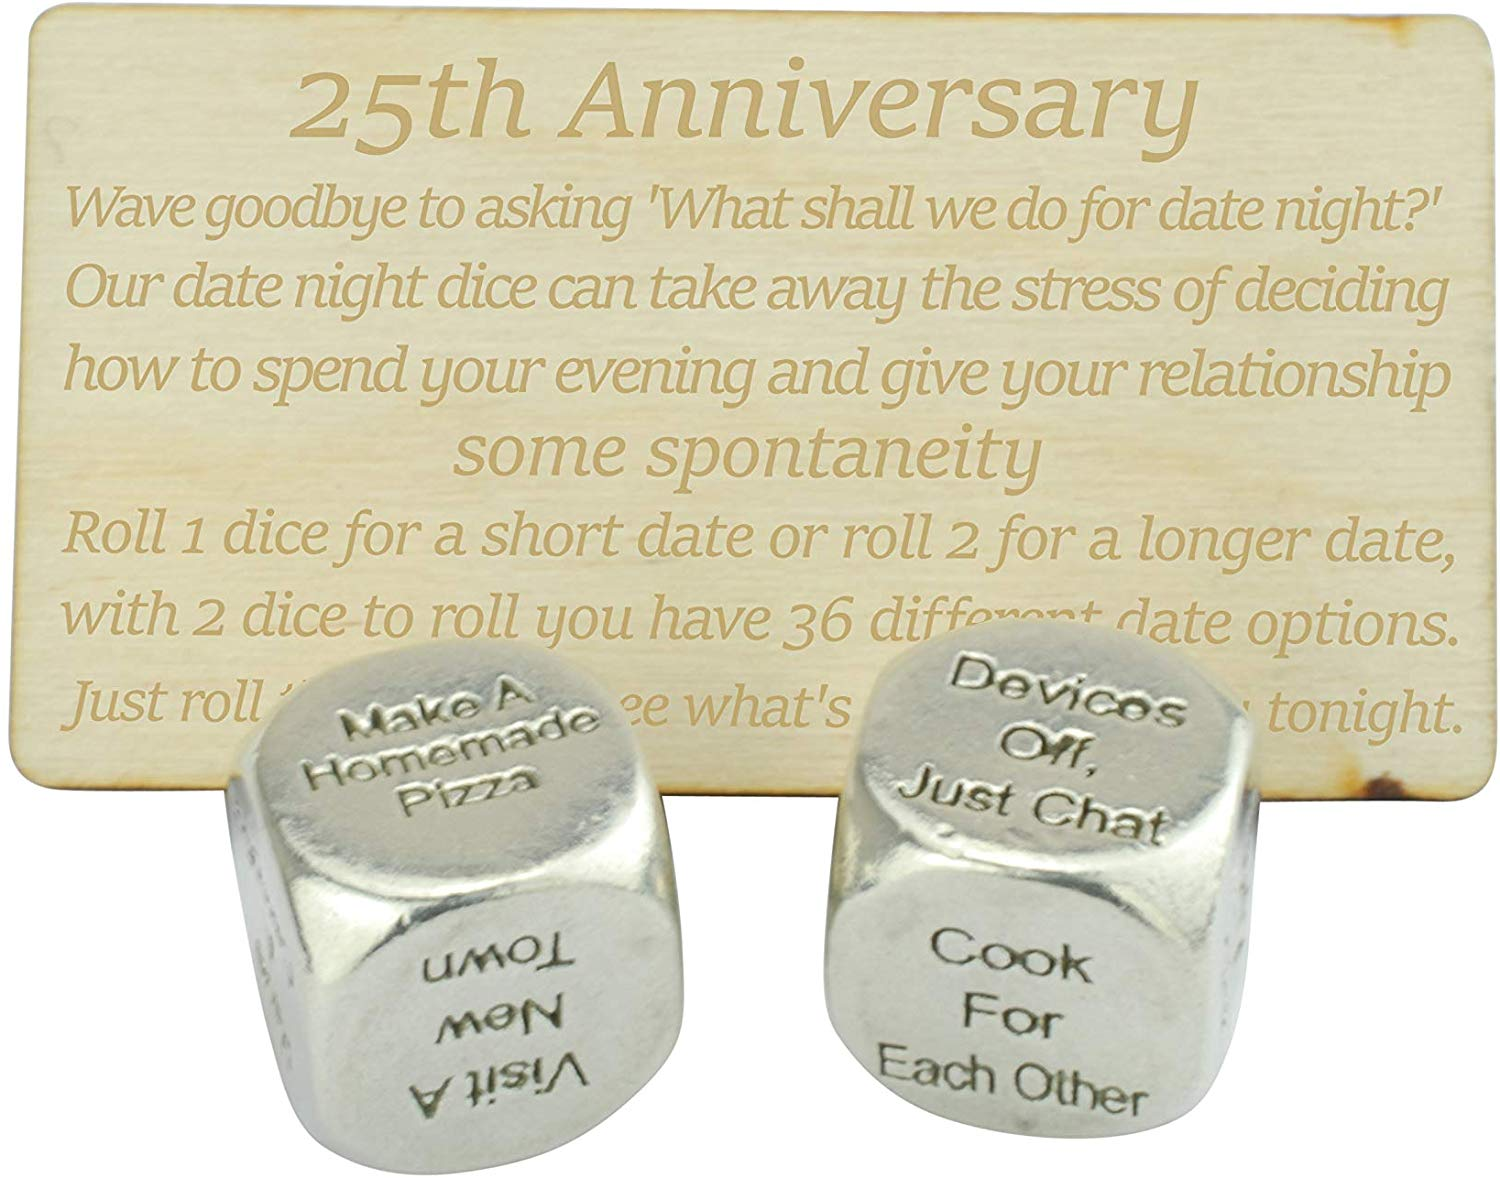 25 Year Anniversary Metal Date Night Dice - Silver Wedding Anniversary Gifts